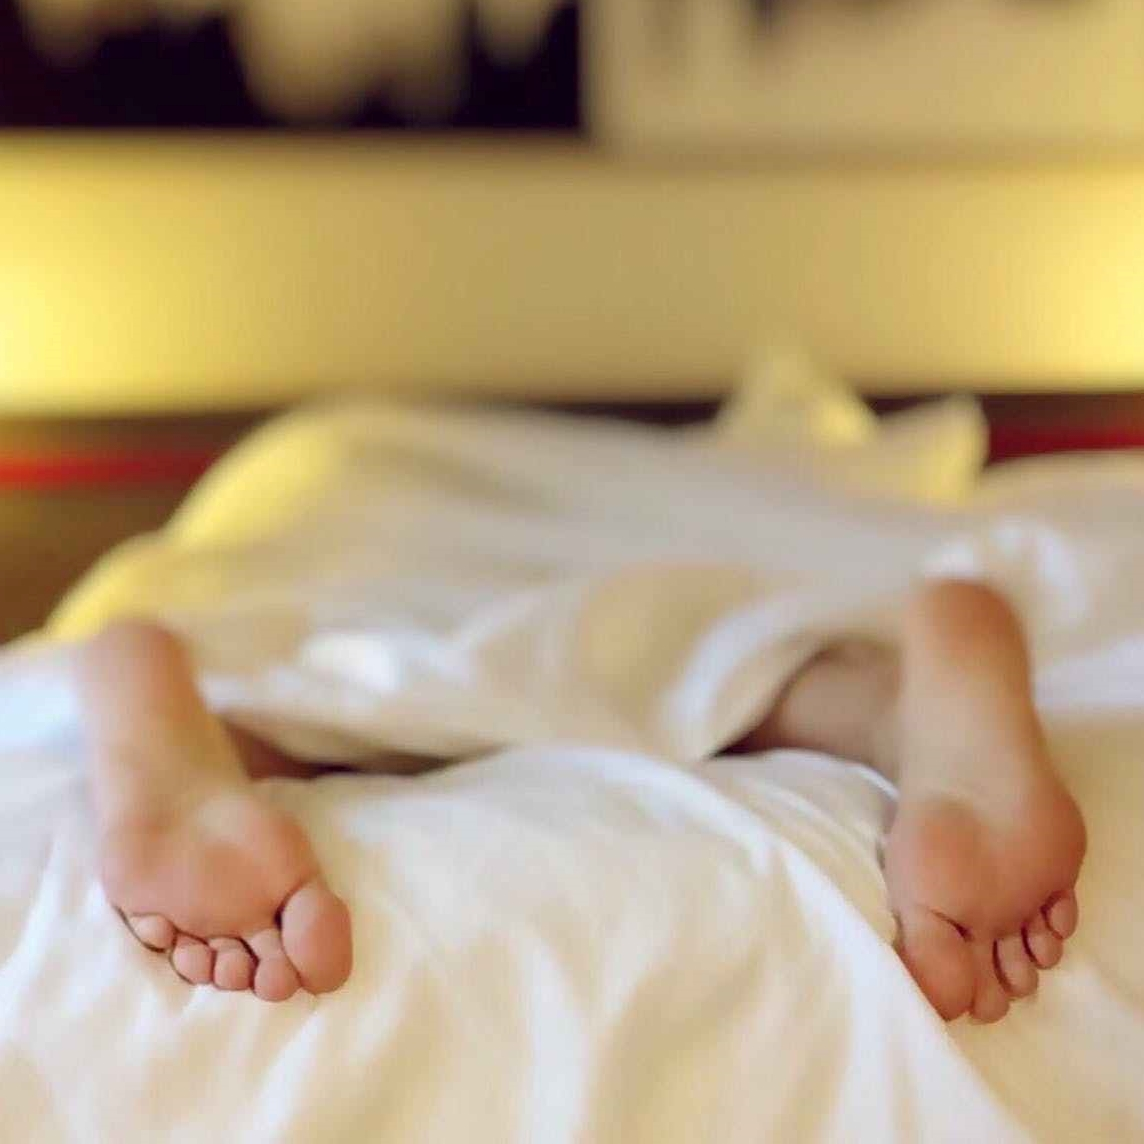 bare feet hang off a bed with white sheets